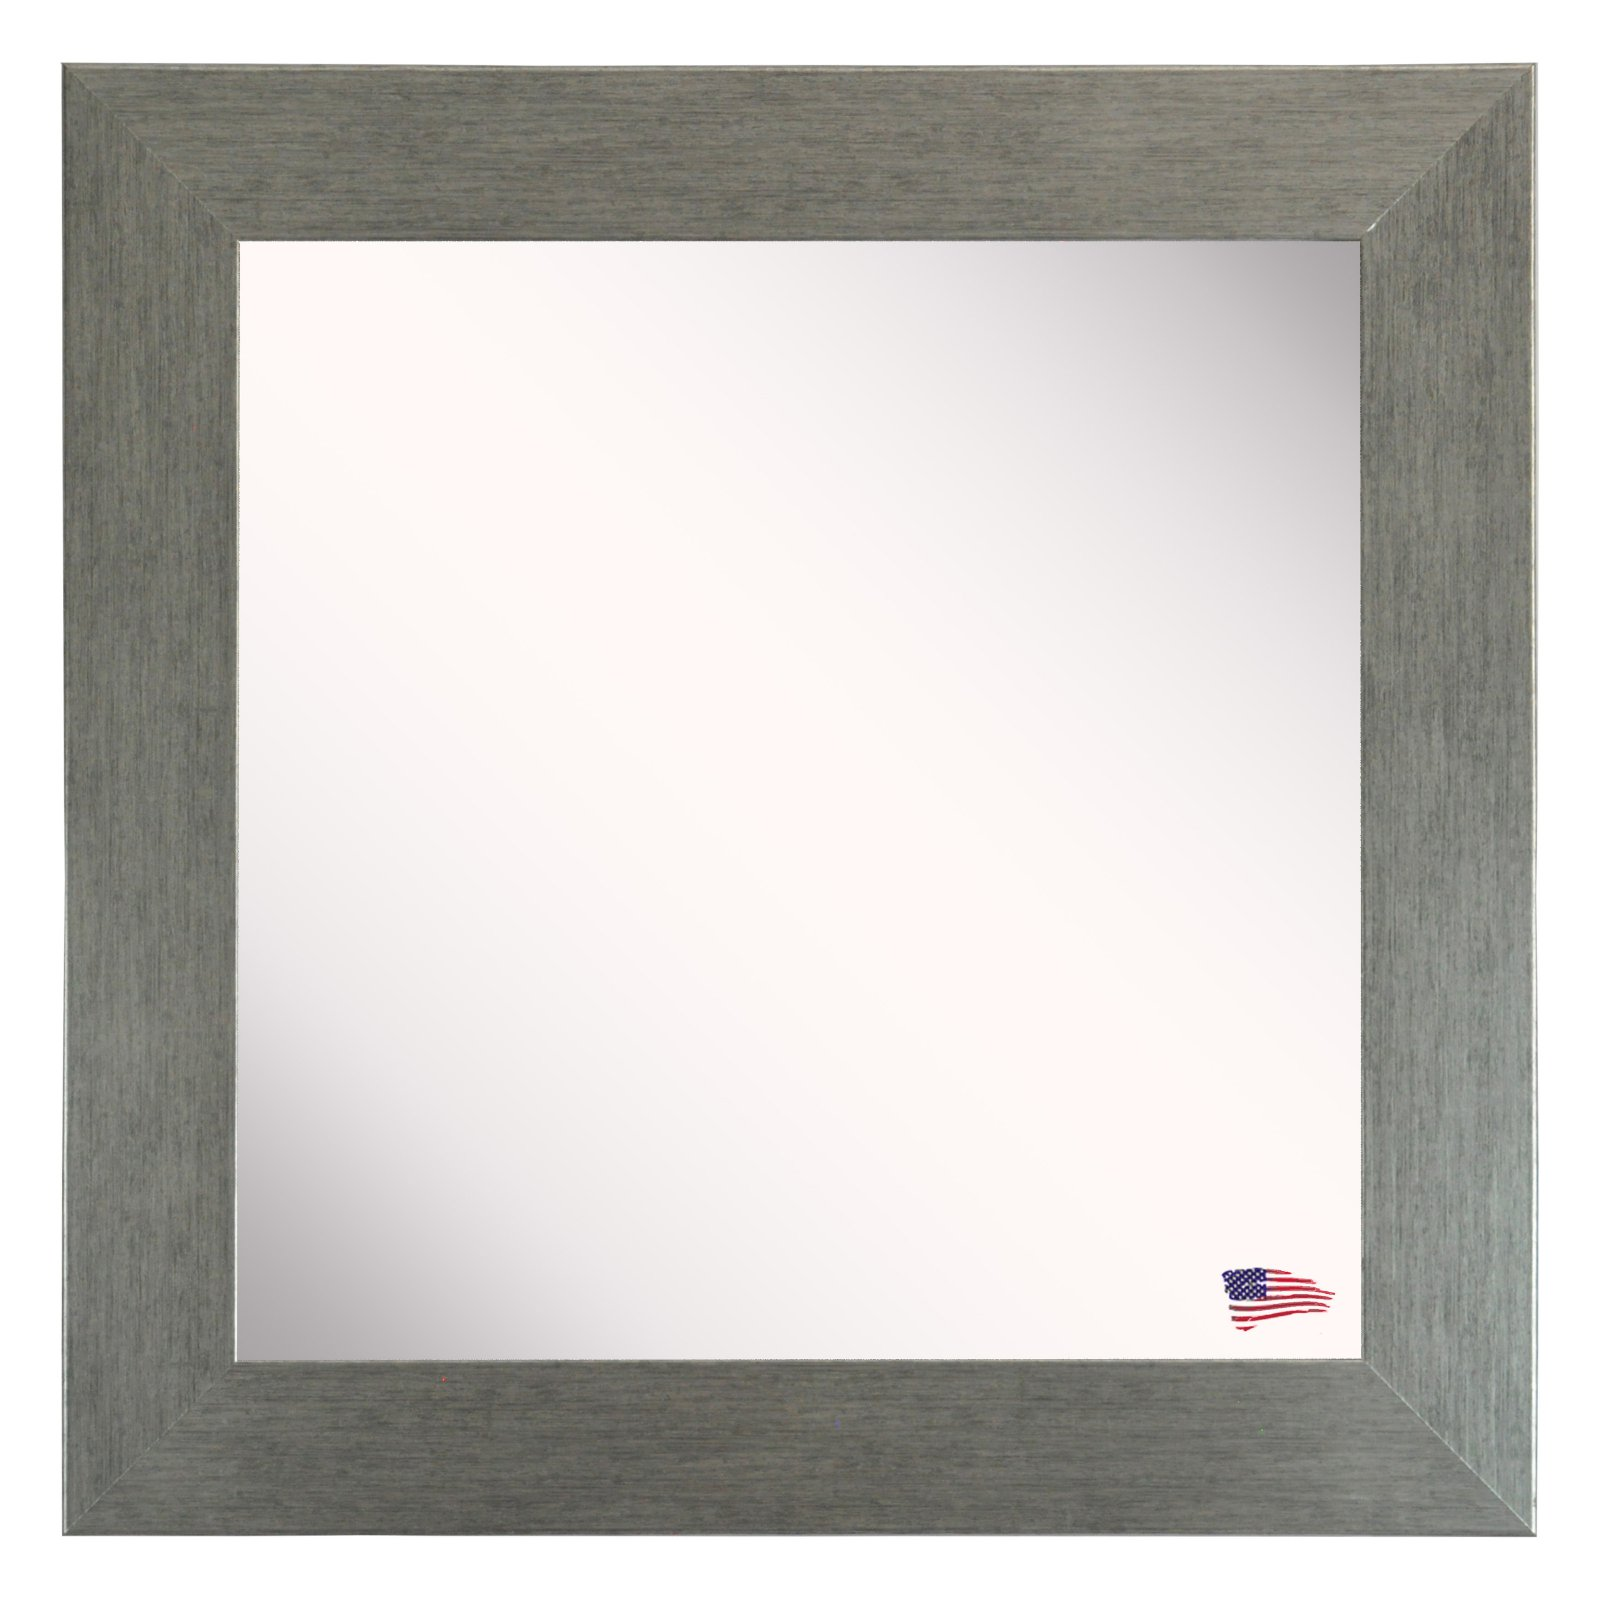 Rayne Mirrors Yukon Wall Mirror by Rayne Mirrors